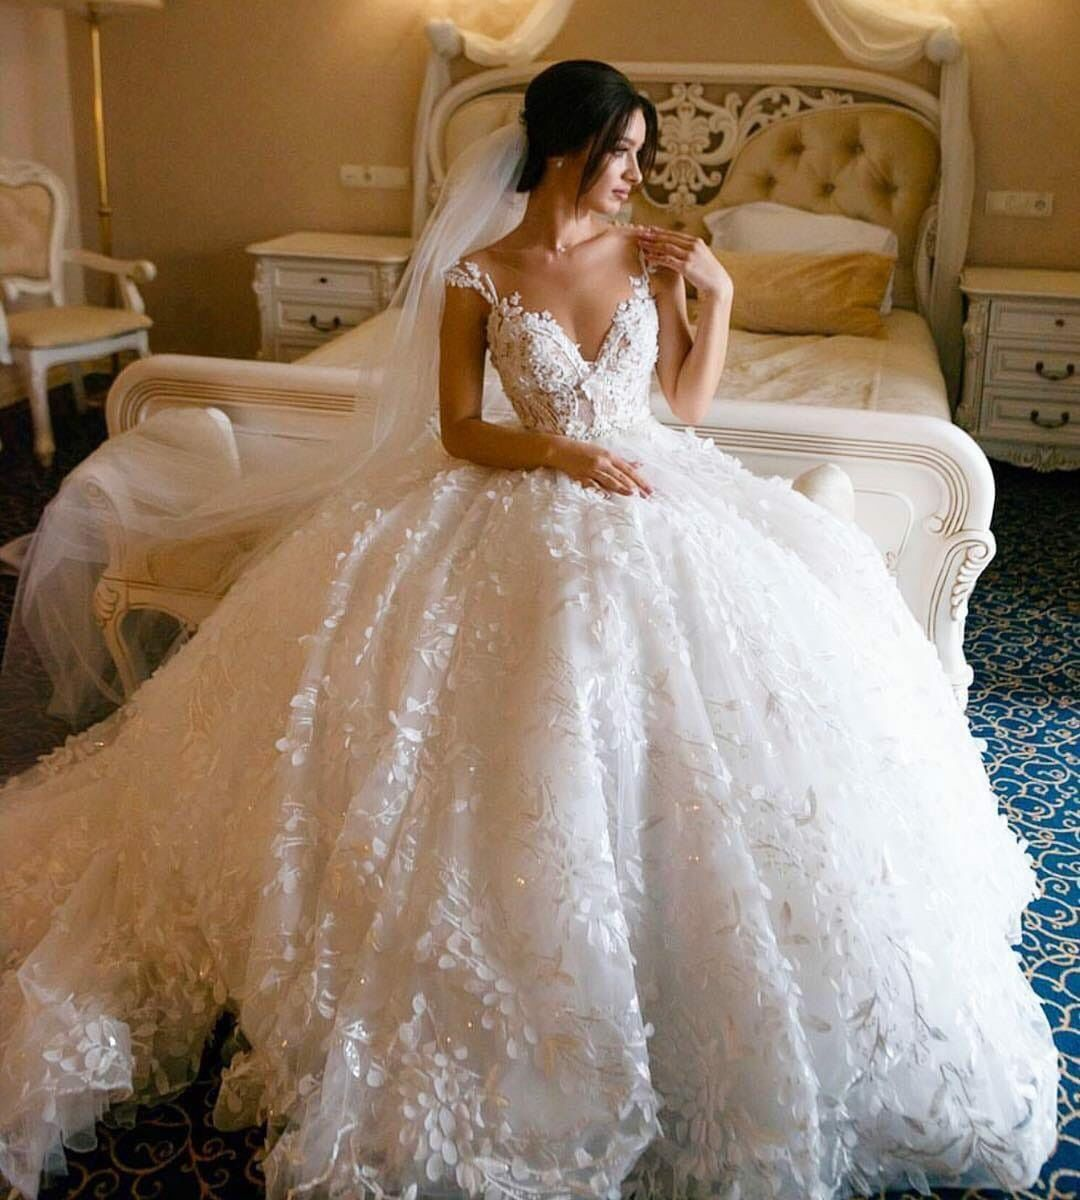 Pin By Angelica On Wedding Wedding Dresses Lace Ballgown Floral Lace Wedding Dress Vintage Ball Gown Wedding Dresses [ jpg ]